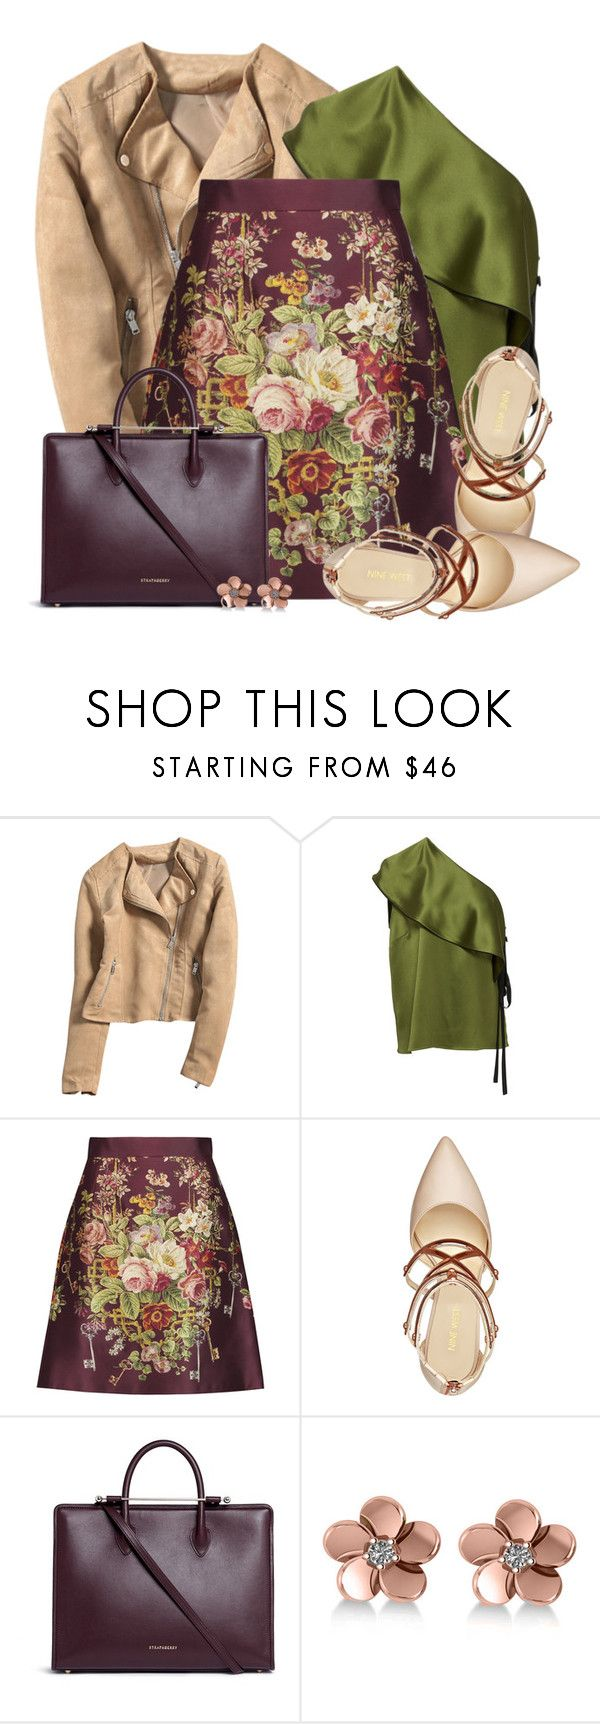 """Dolce & Gabbana Printed silk Mini Skirt"" by colierollers ❤ liked on Polyvore featuring Hellessy, Dolce&Gabbana, Nine West, Strathberry and Allurez"